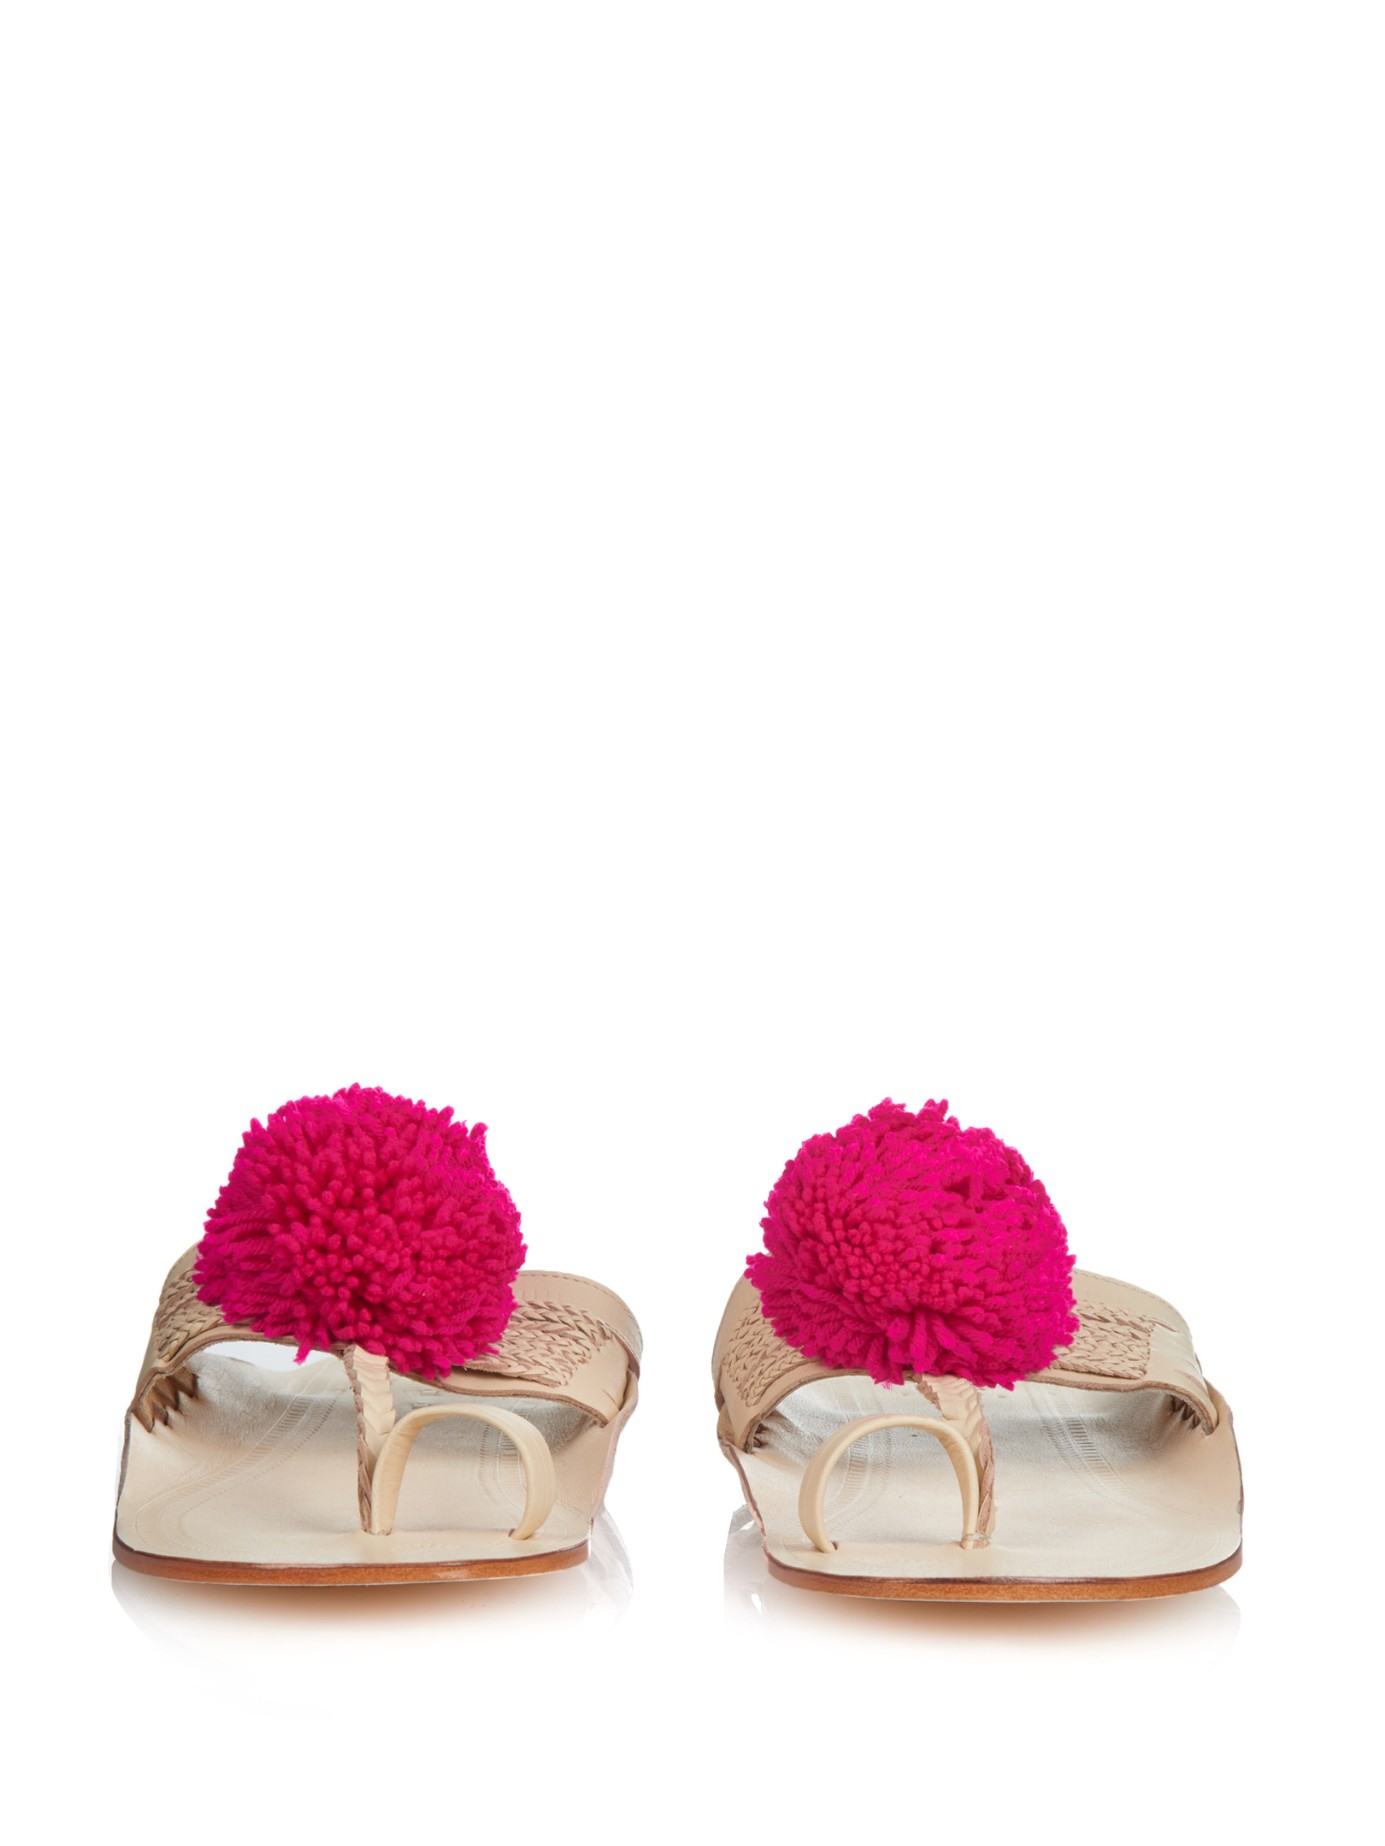 Lyst Figue Chappal Pom Pom Sandals In Pink